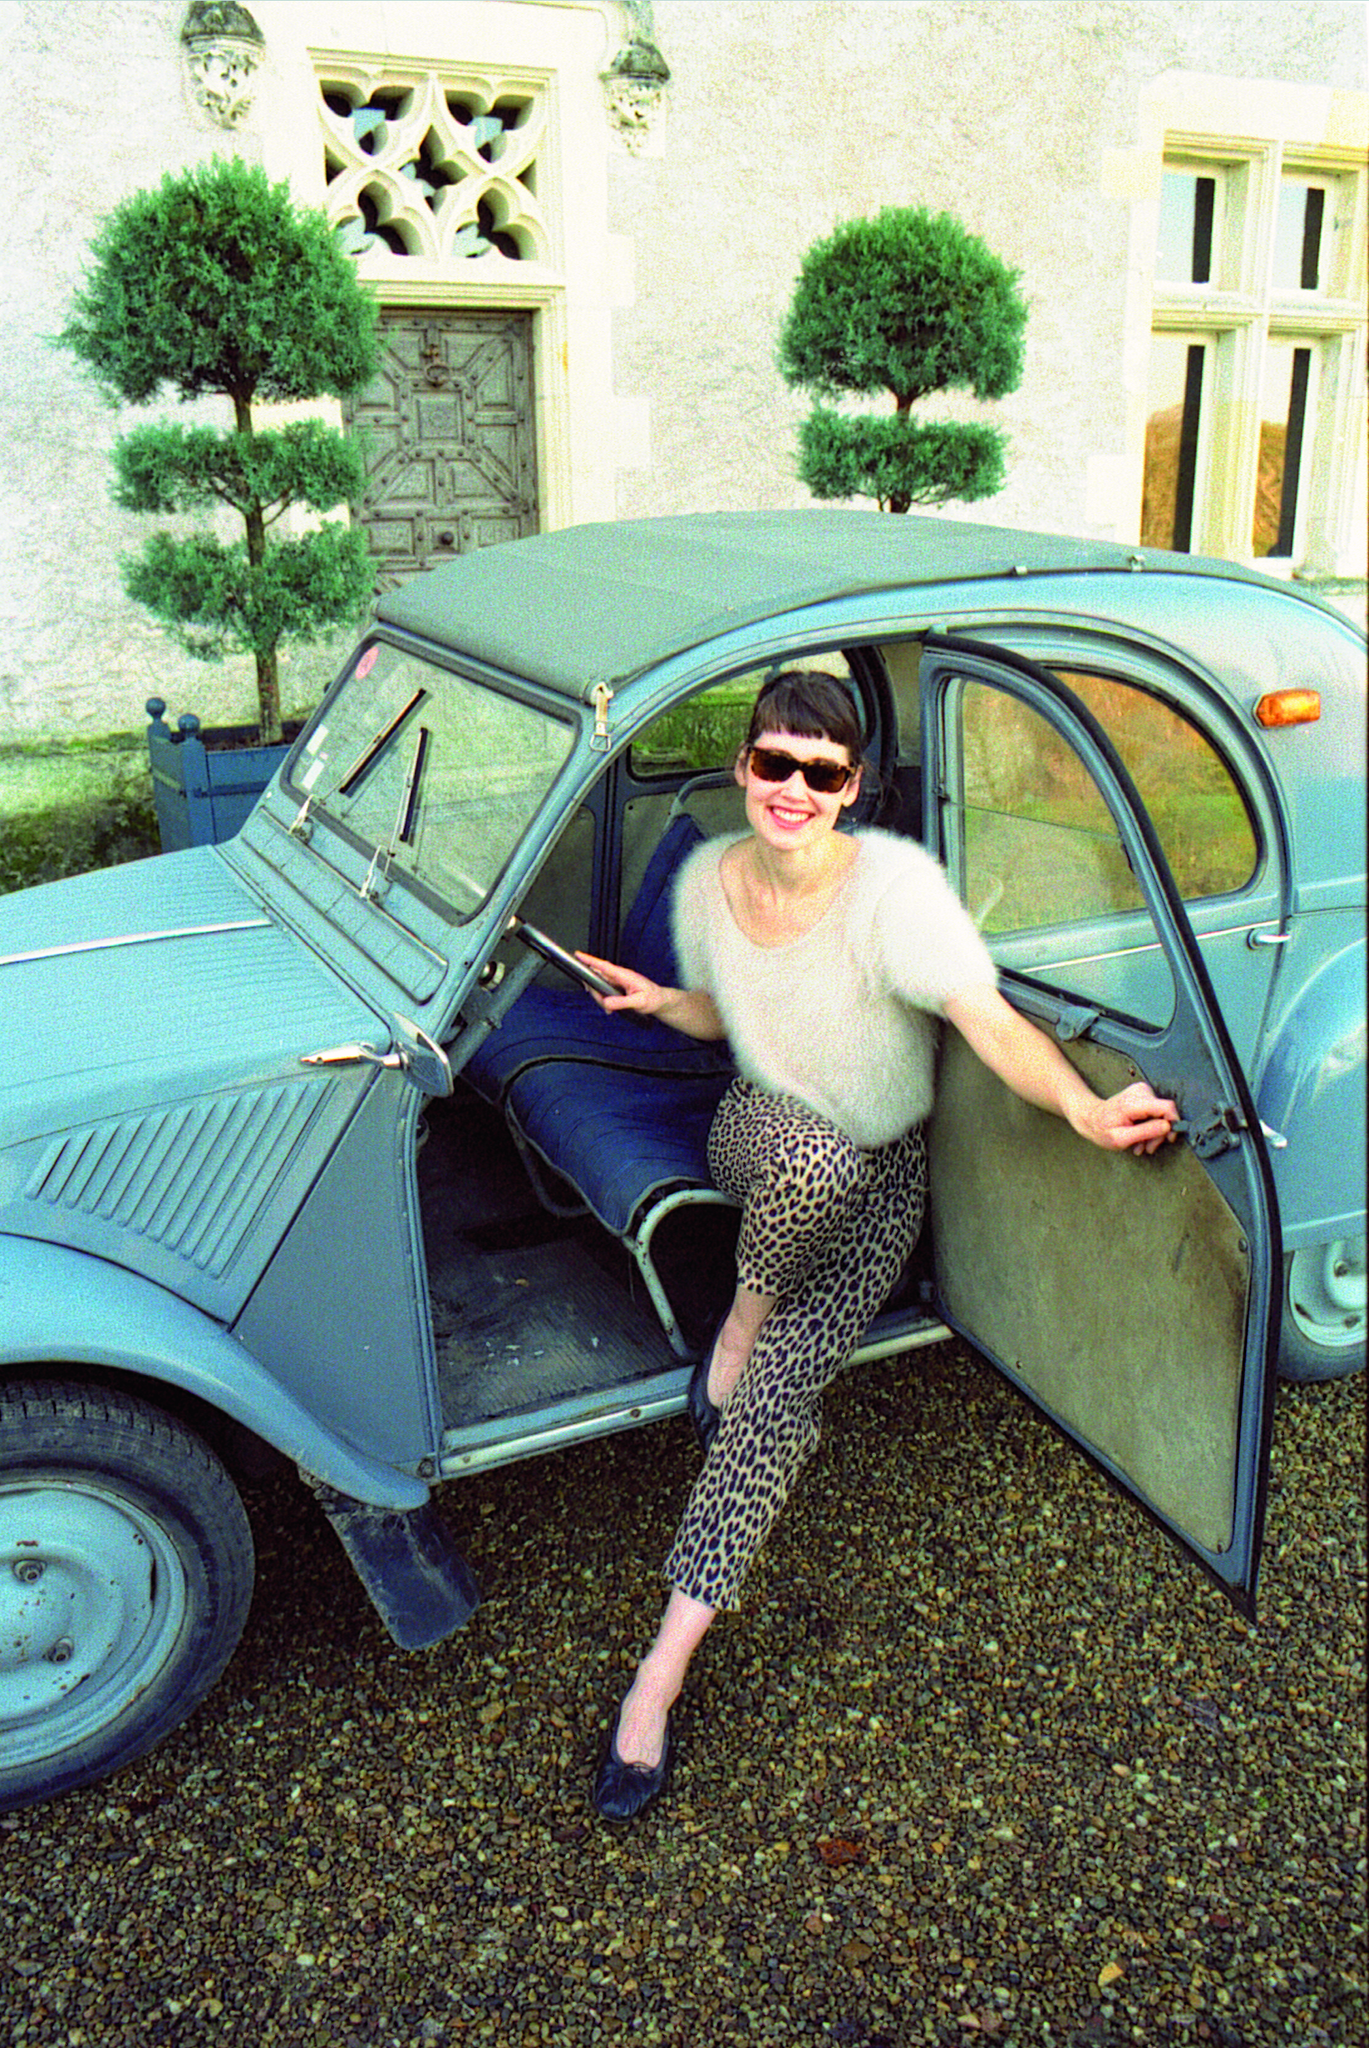 Rachel Riley archive image posing with a car